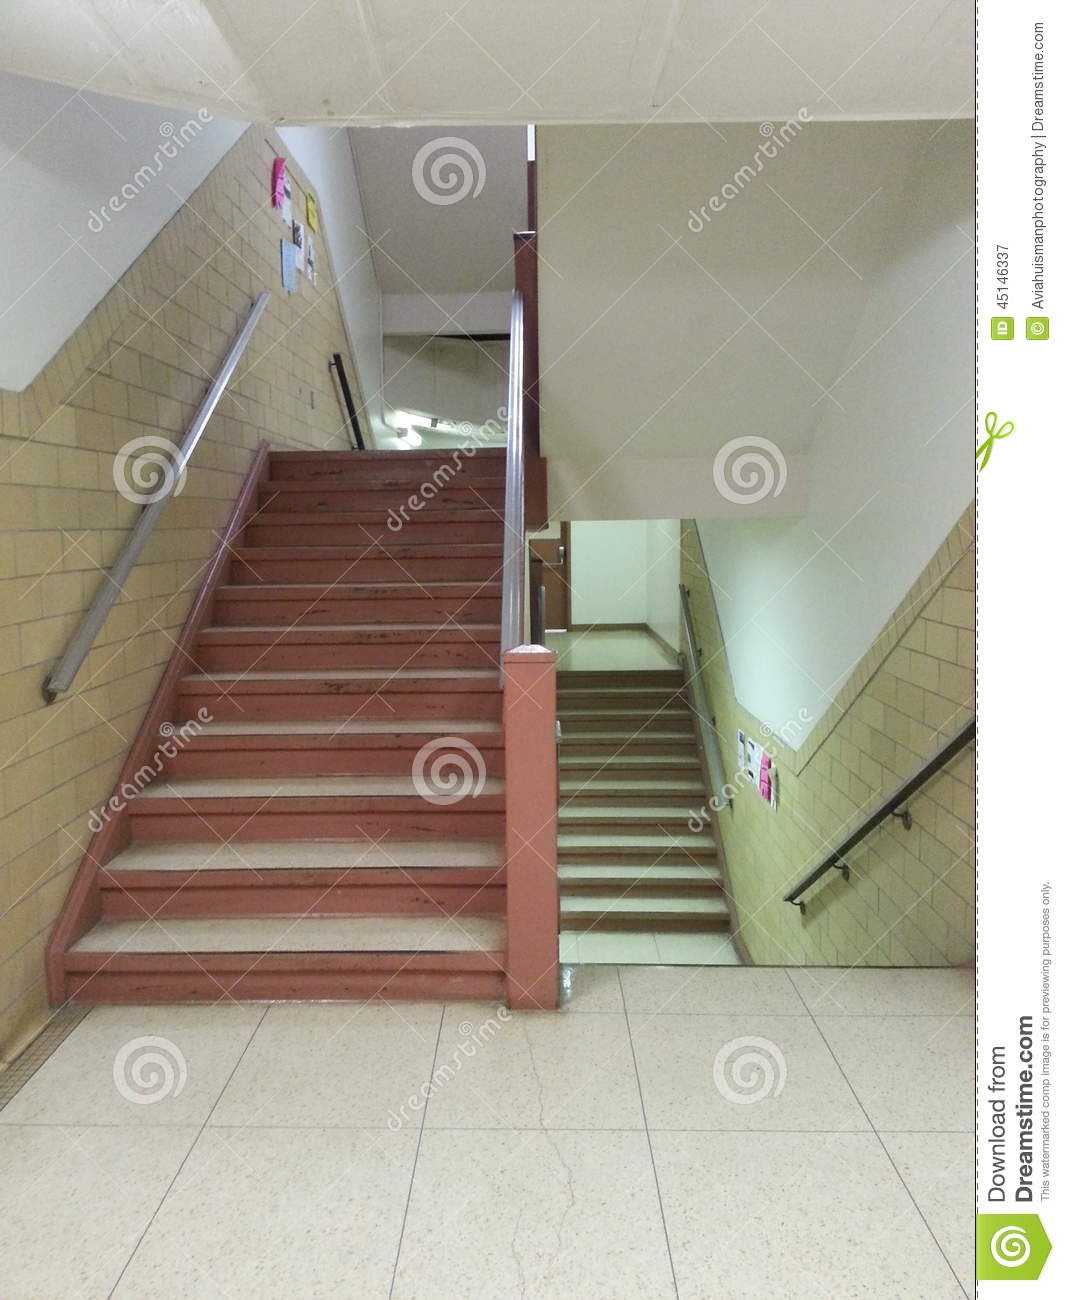 Large building stairwell stock photo image 45146337 for Down to the floor